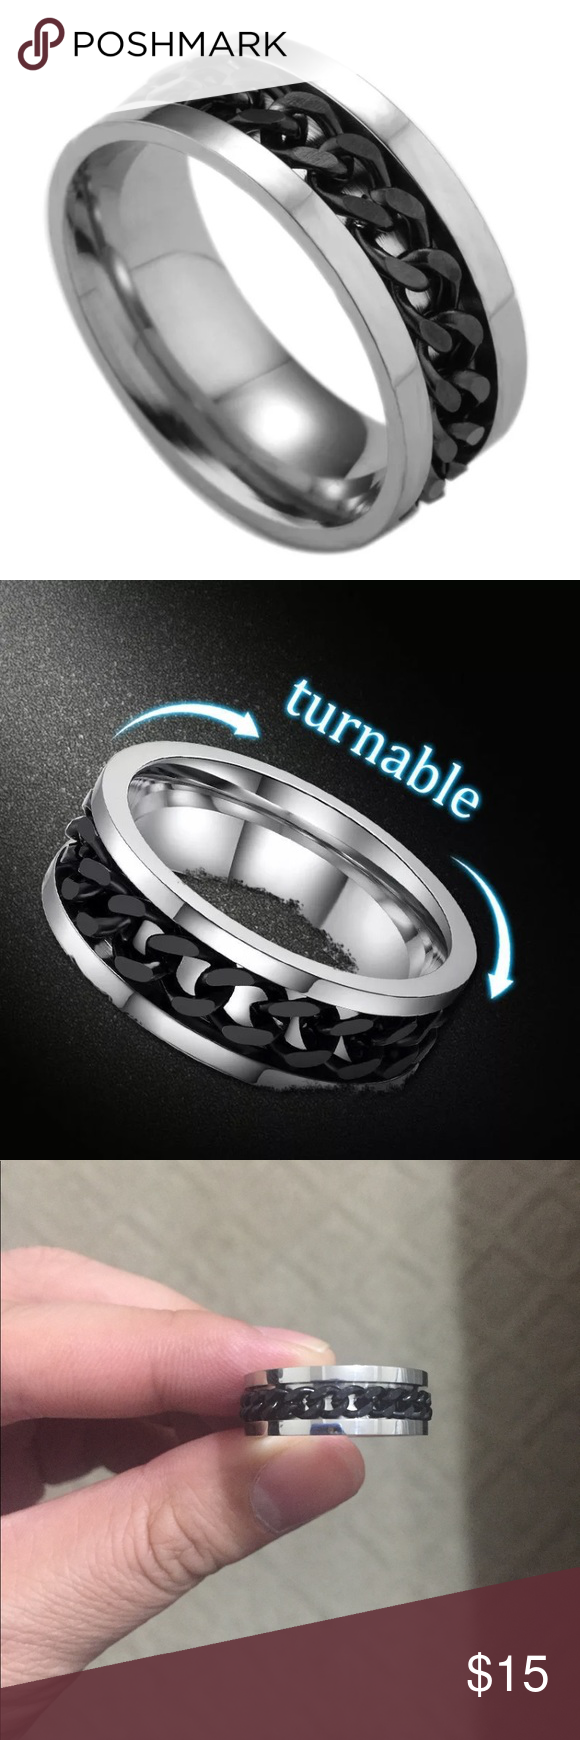 Black Rotatable Chain Stainless Steel Ring Steel Ring Stainless Steel Rings Misguided Fashion